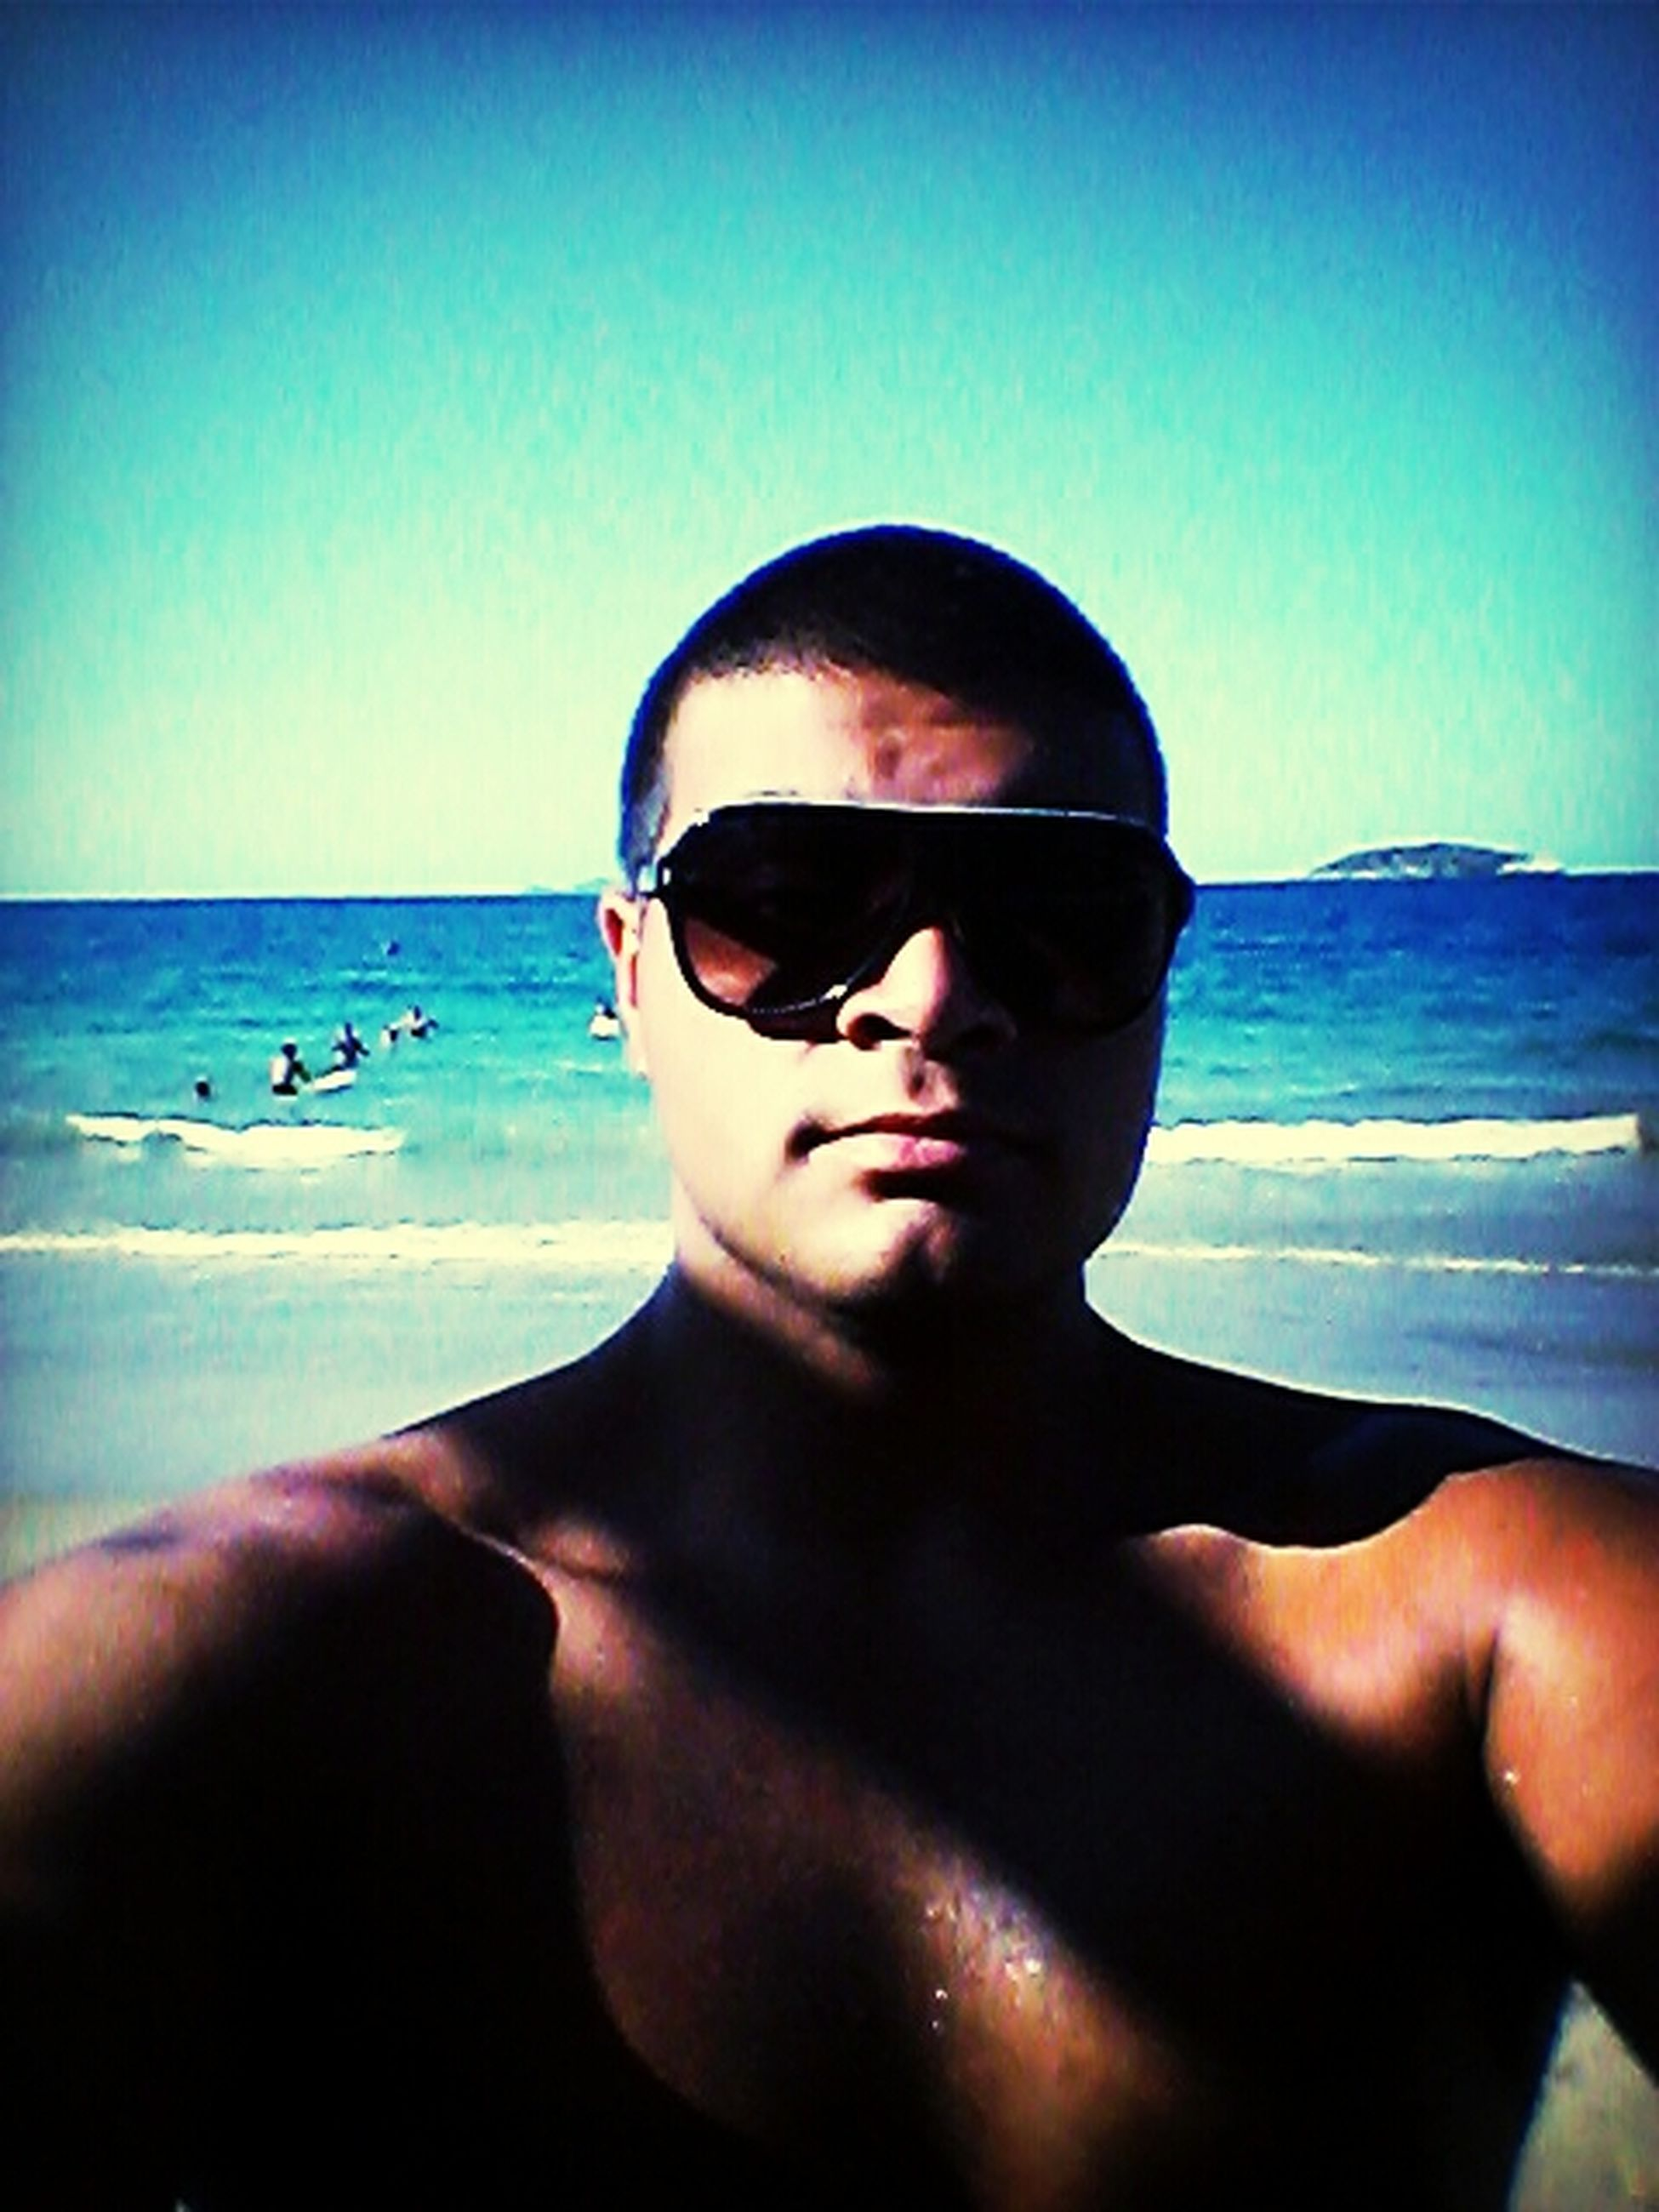 sea, water, horizon over water, beach, lifestyles, clear sky, leisure activity, copy space, young adult, sky, headshot, shore, person, sunglasses, blue, vacations, young men, holding